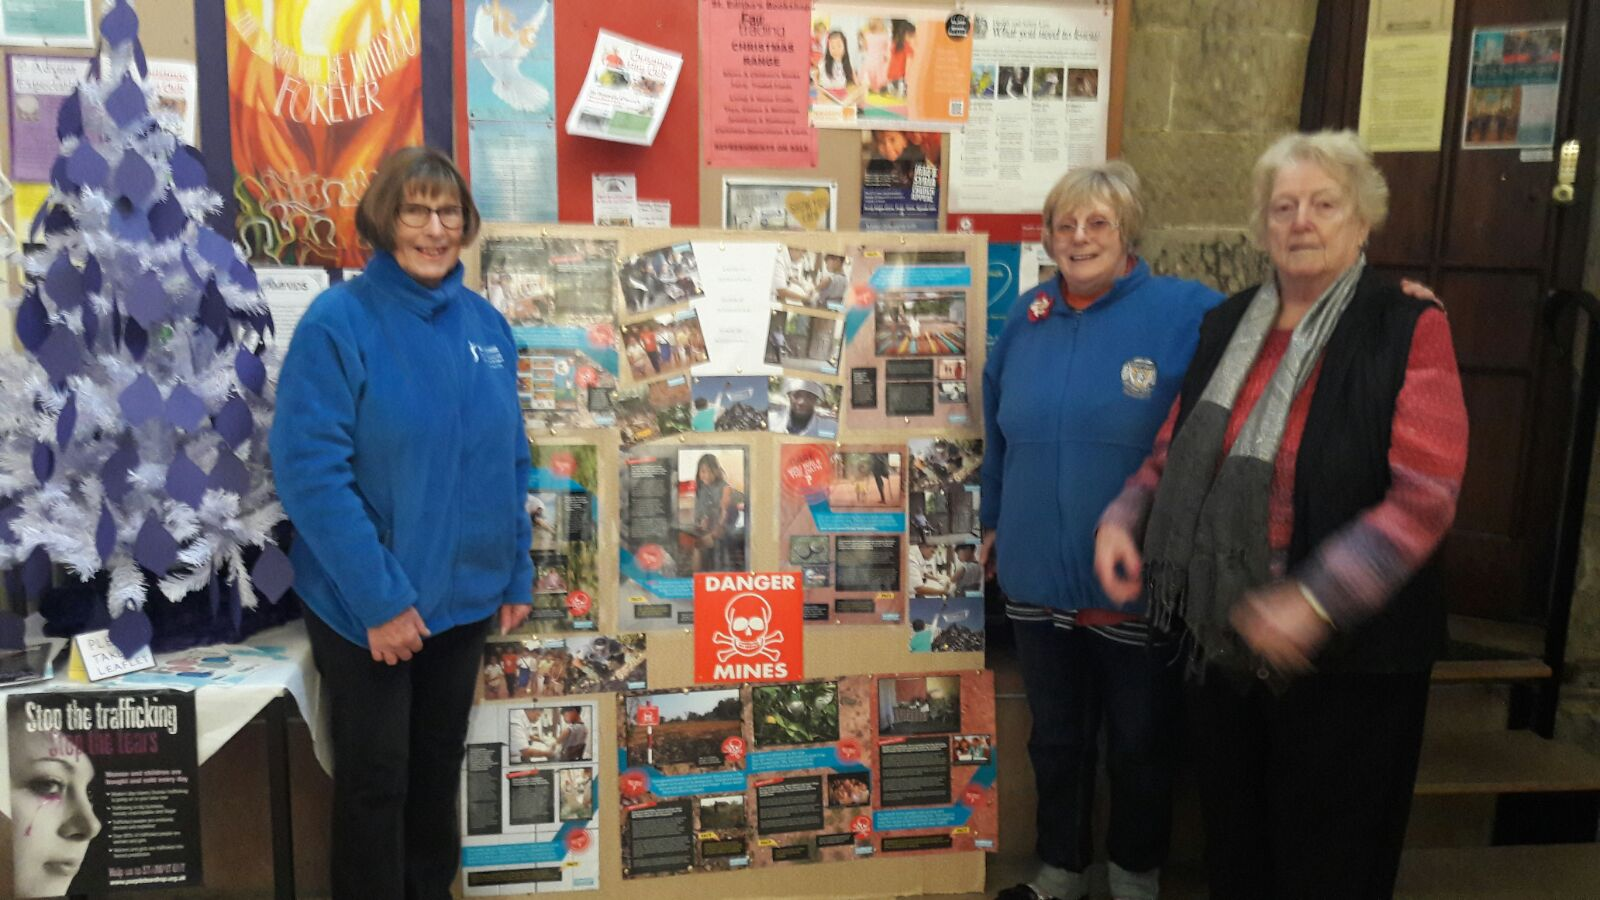 Tamworth Soroptimists with their display consisting of Syria's Young Survivors posters and the 'Dare You Walk the Path?' exhibition at St Editha's Church, Tamworth.